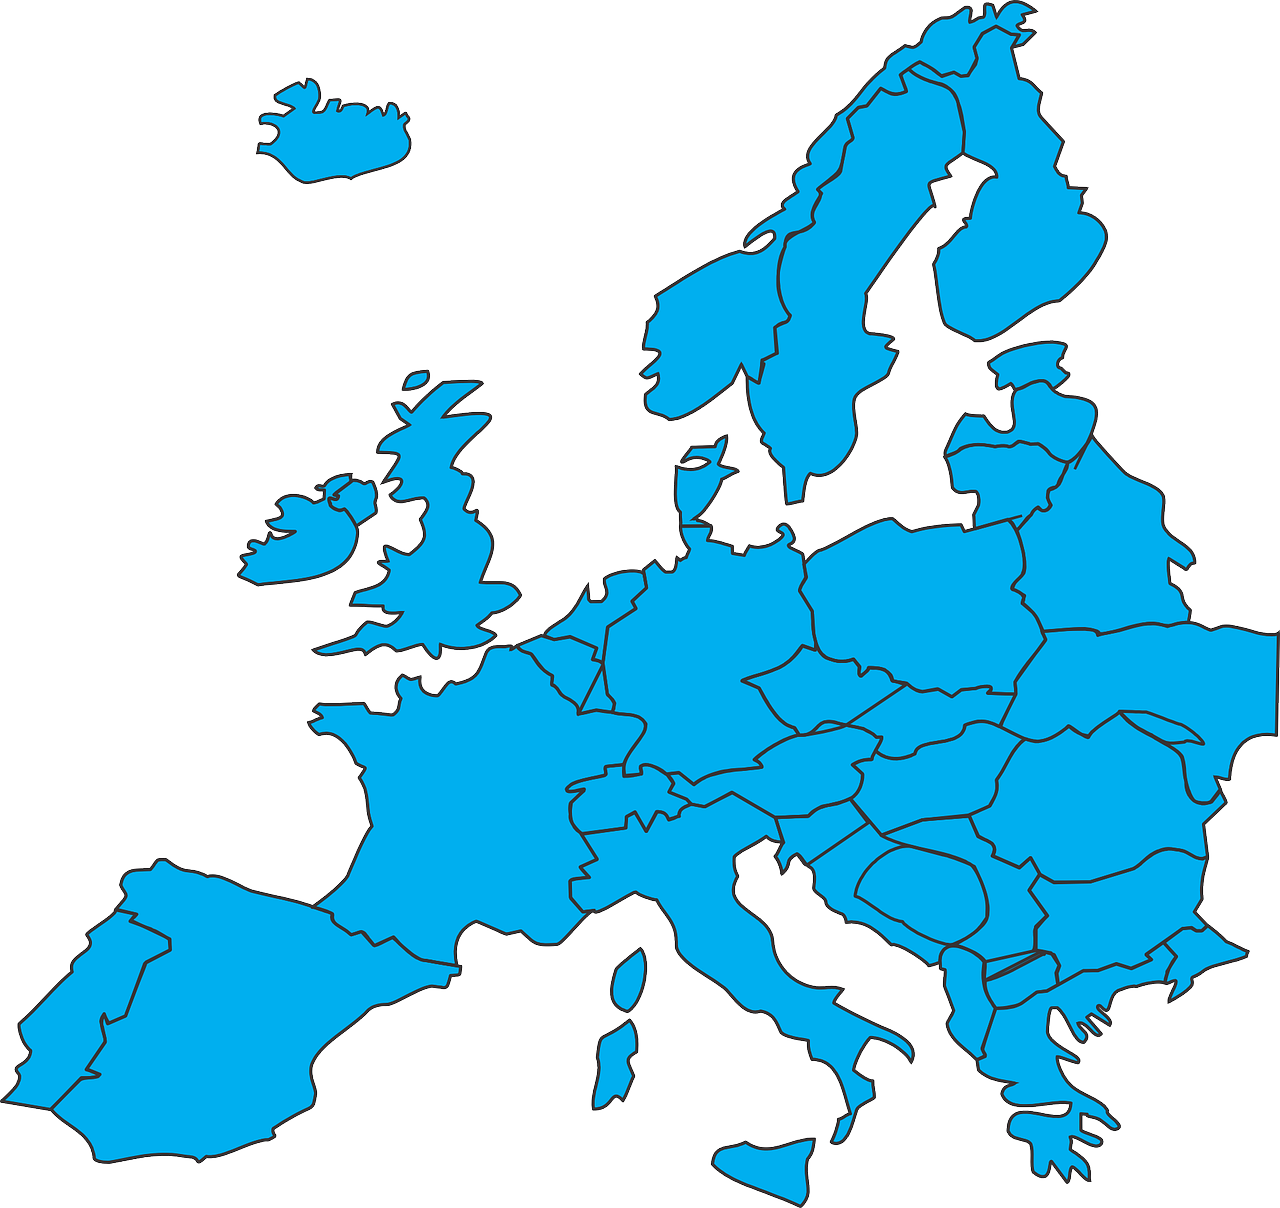 Europe countries map blue transparent image europe pinterest europe countries map blue transparent image gumiabroncs Image collections